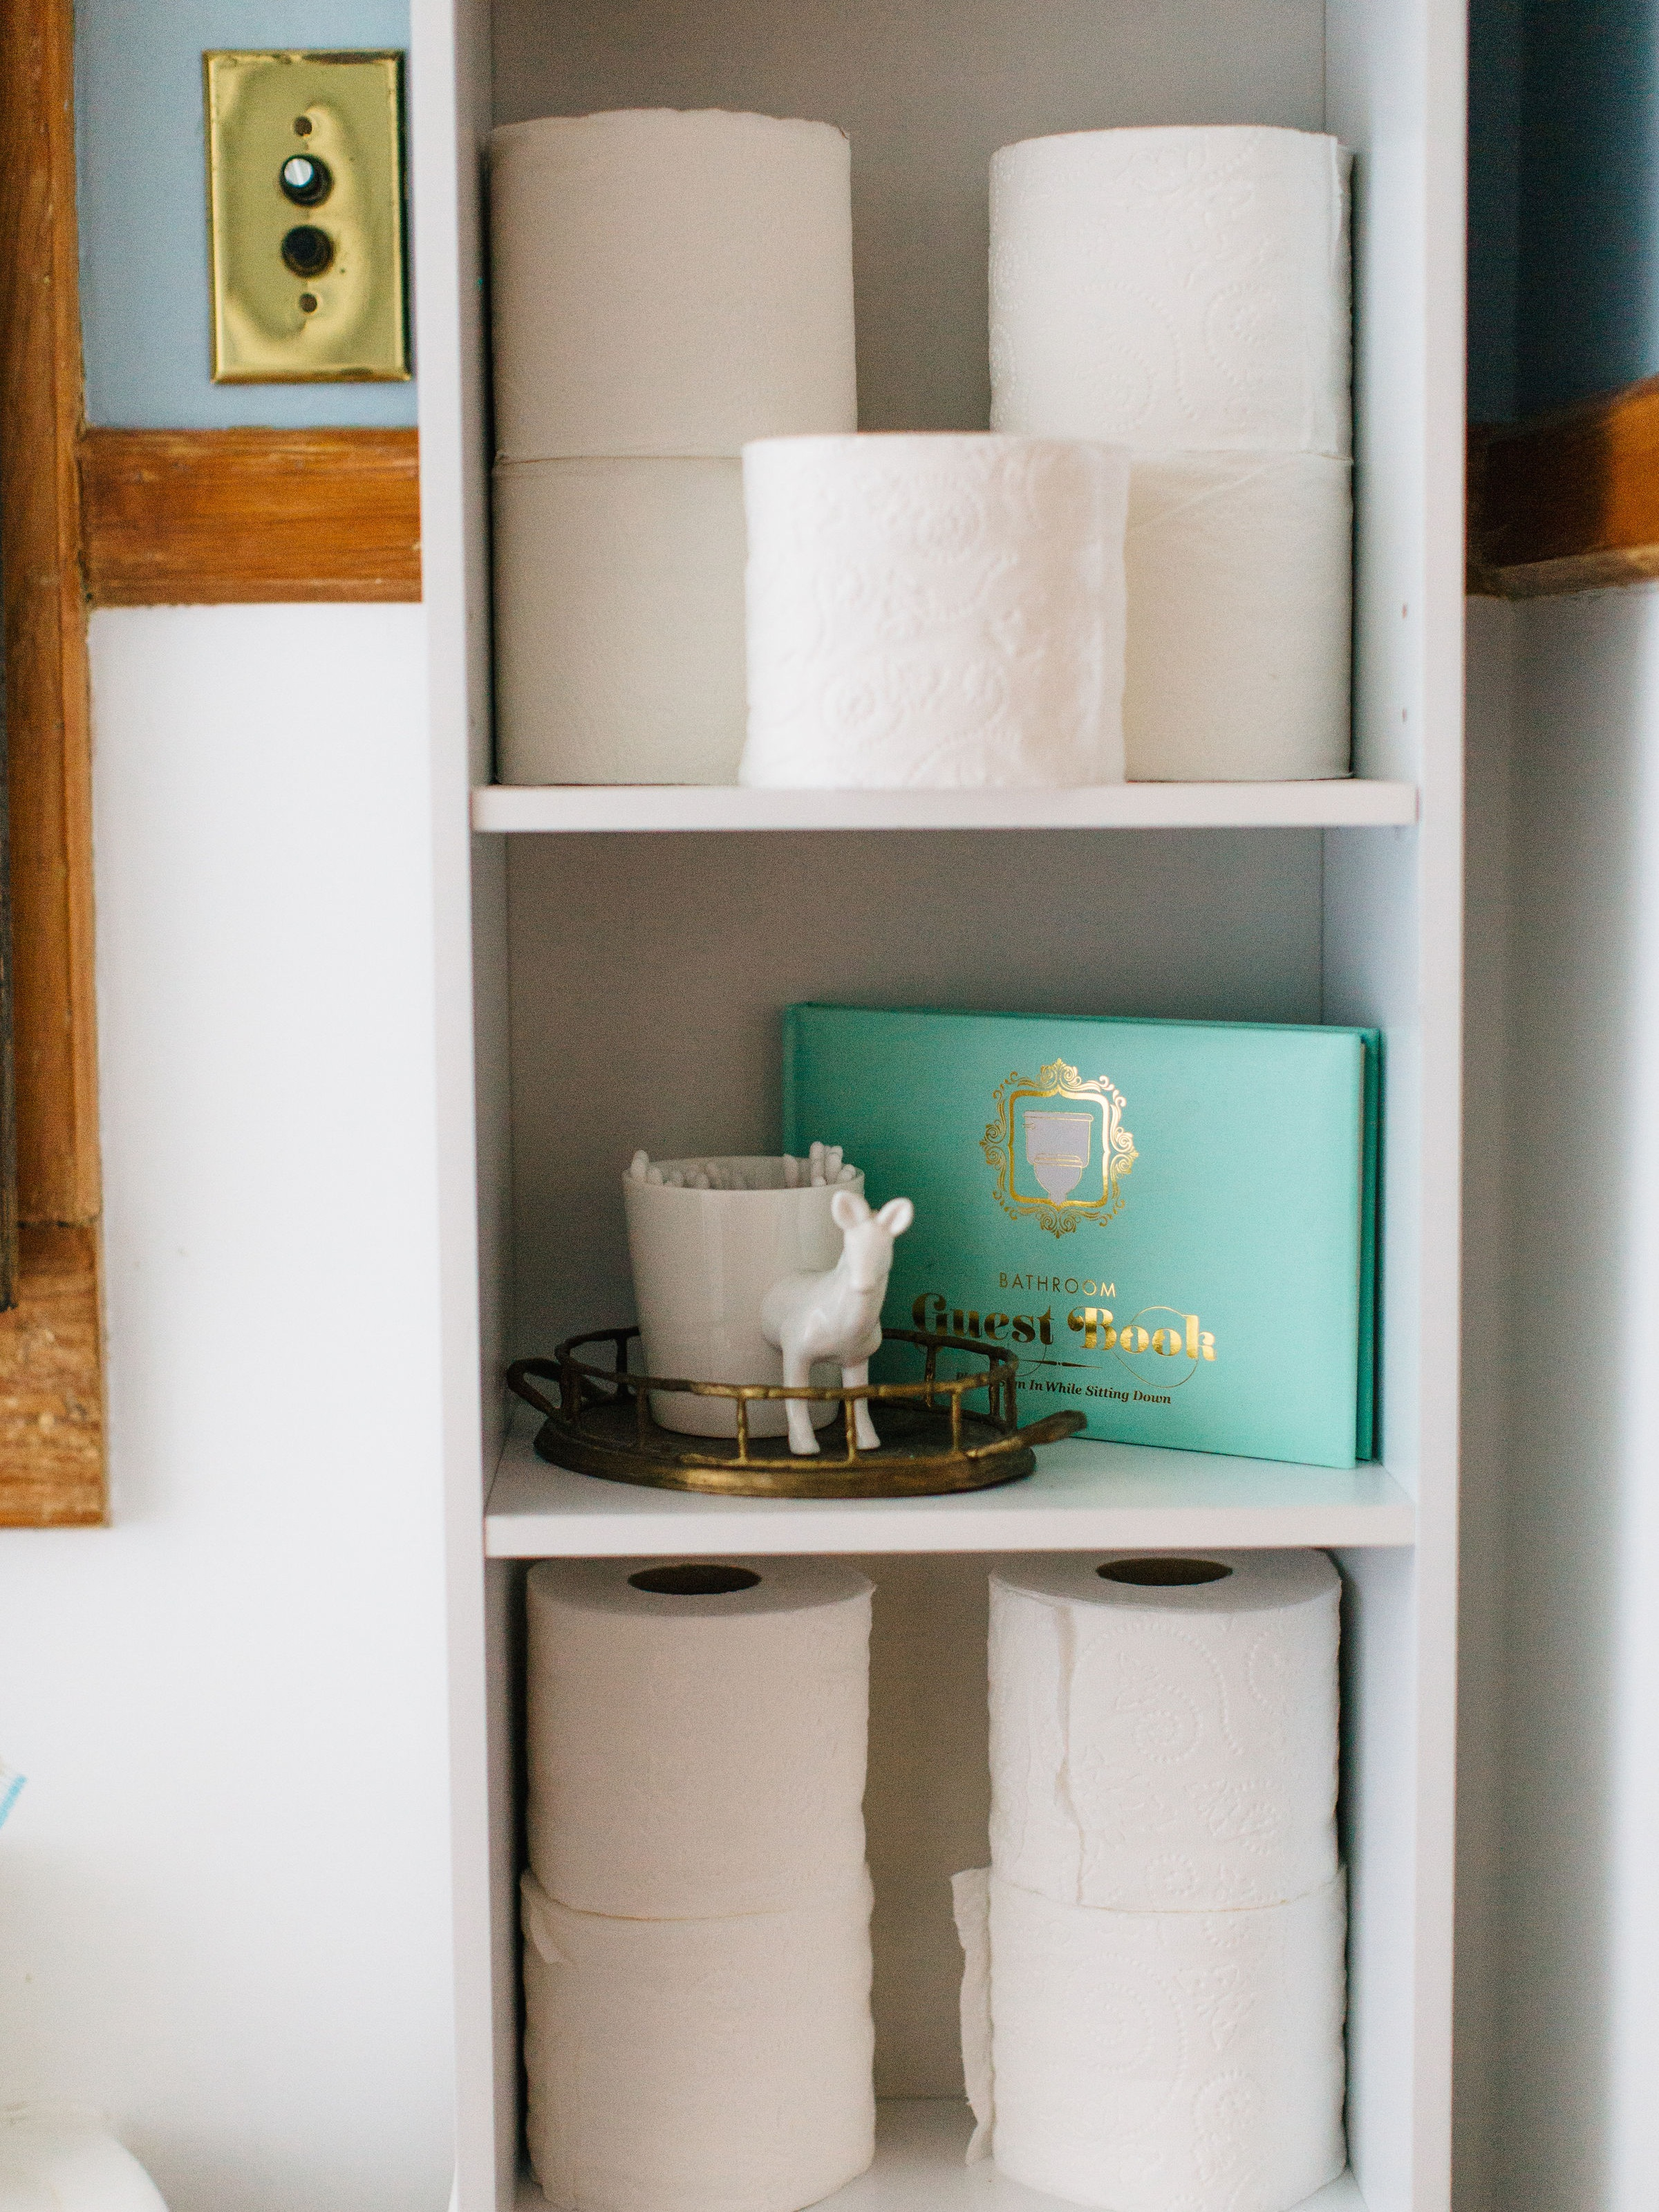 jump start - This package is great for pantries, linen closets, and other small areas of the home.More details here.